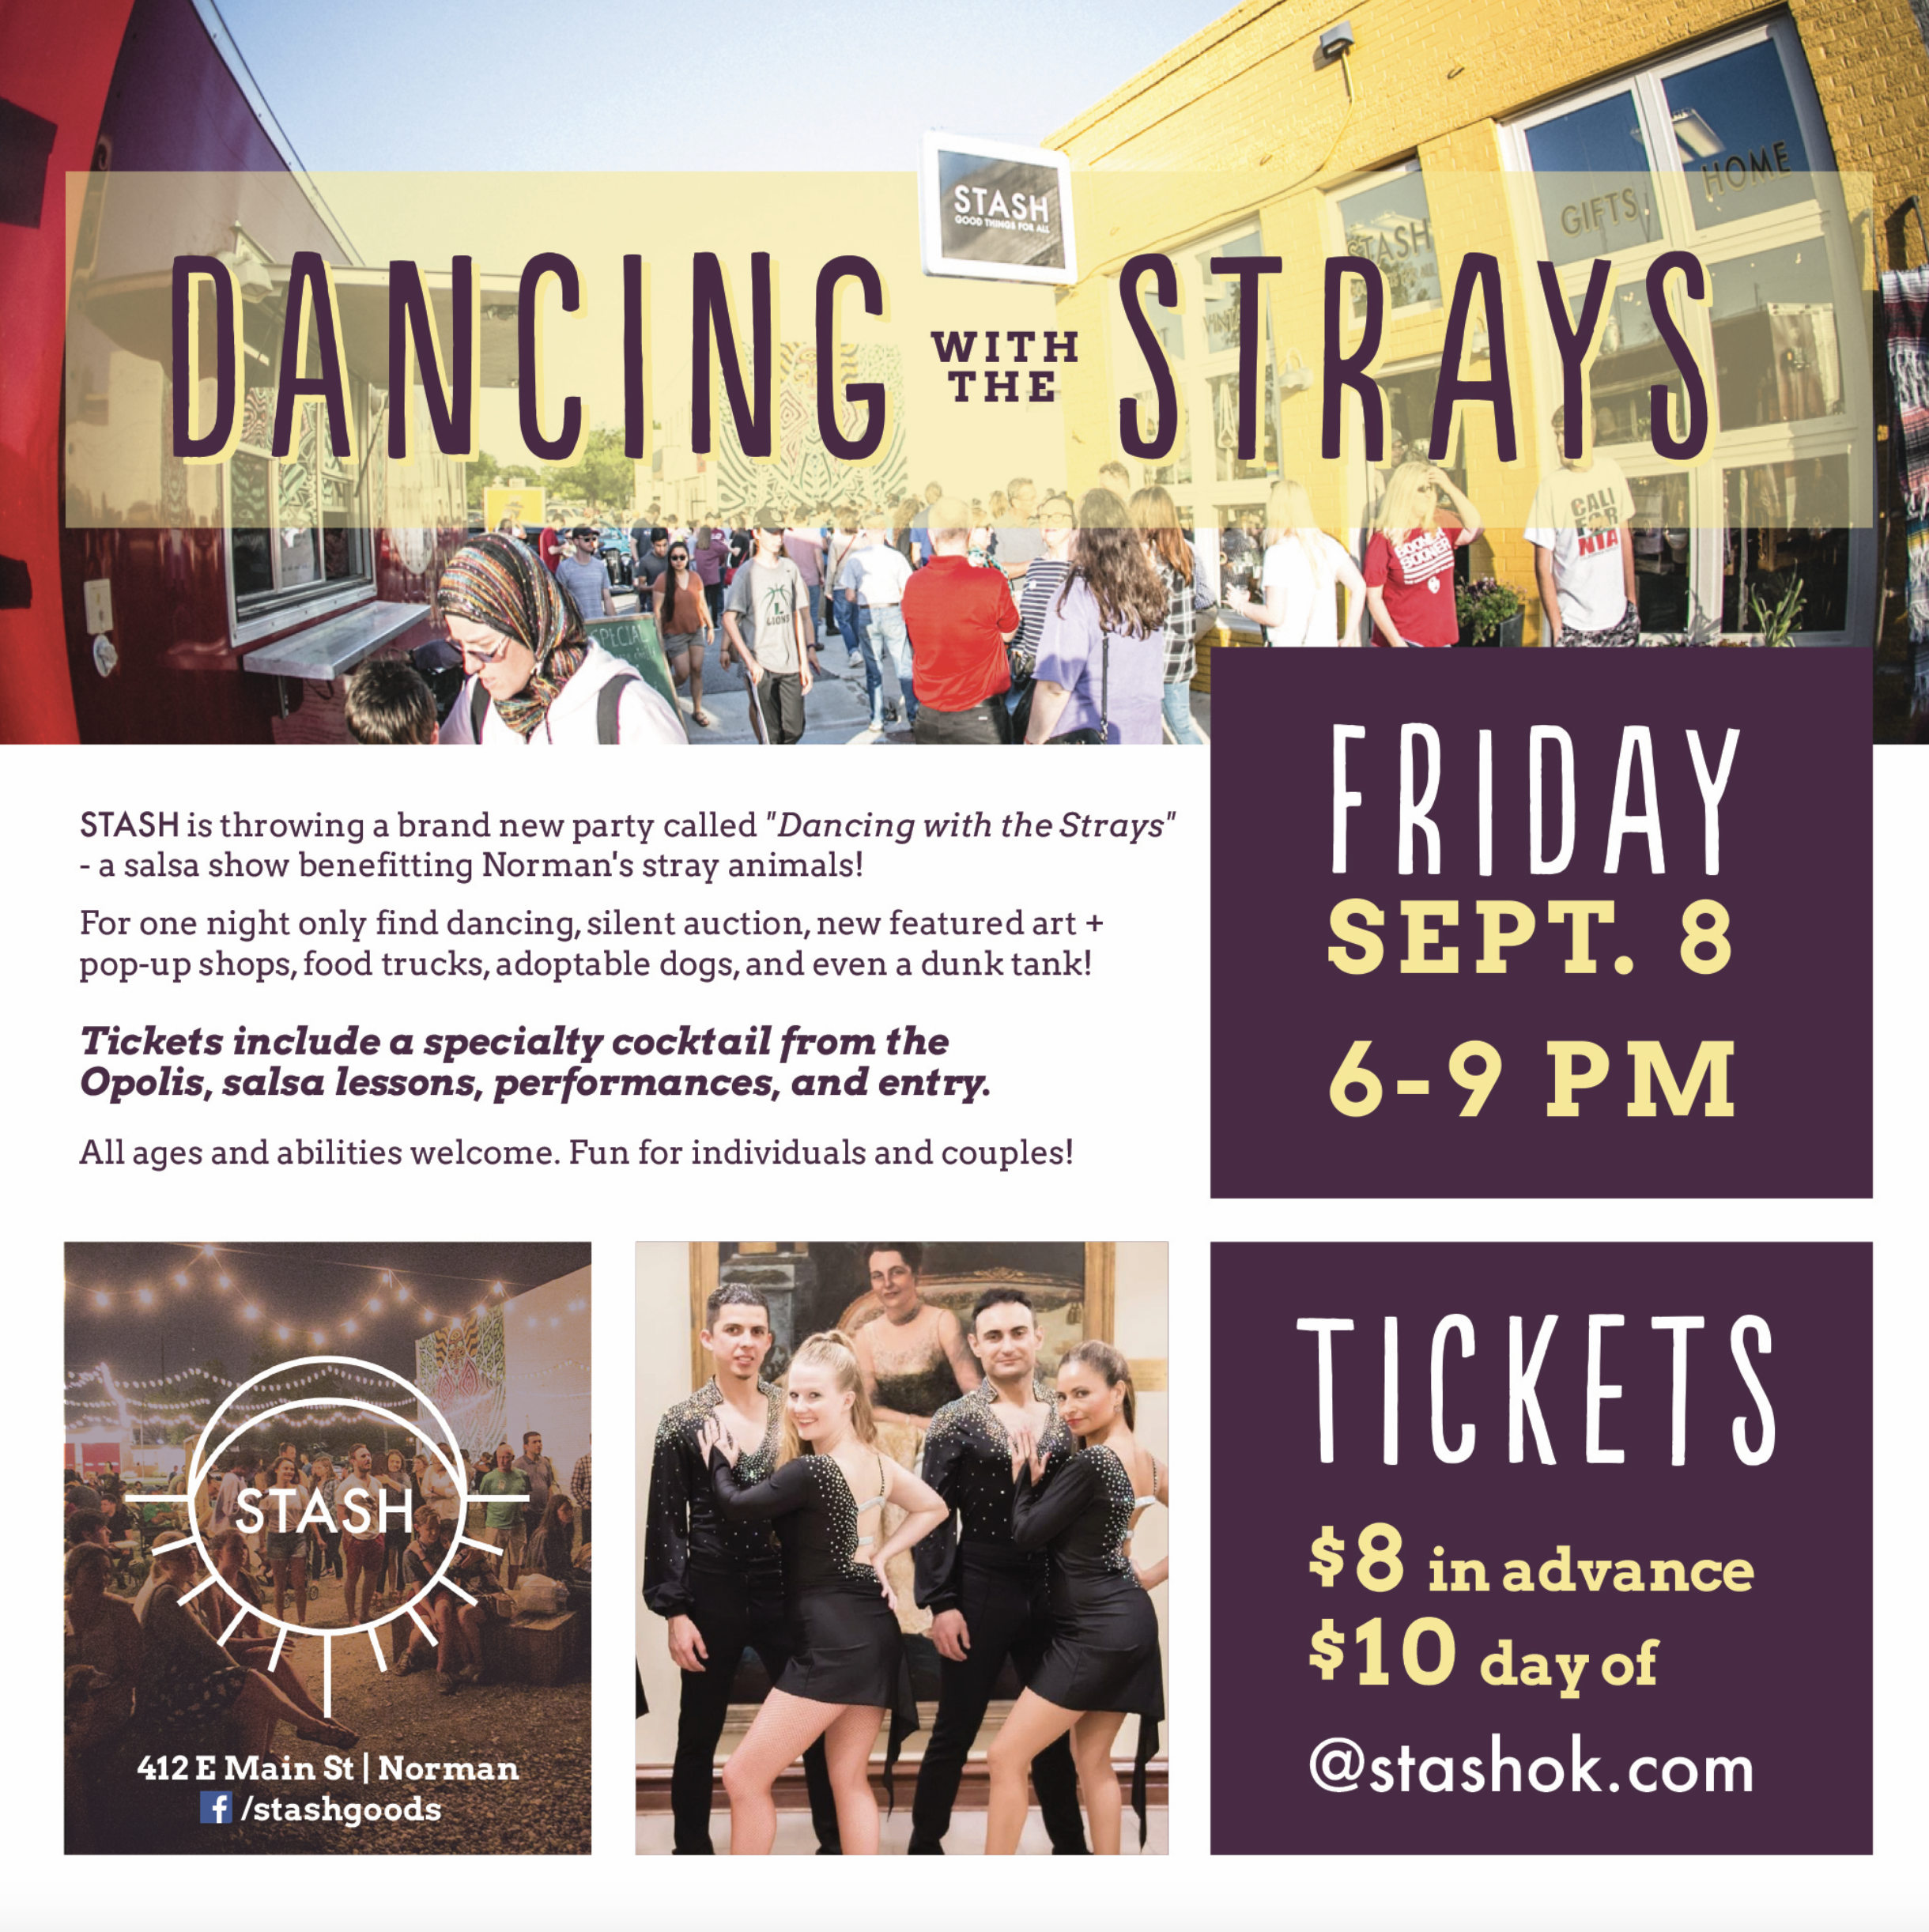 Dancing with the Strays | Donated Flyer Design